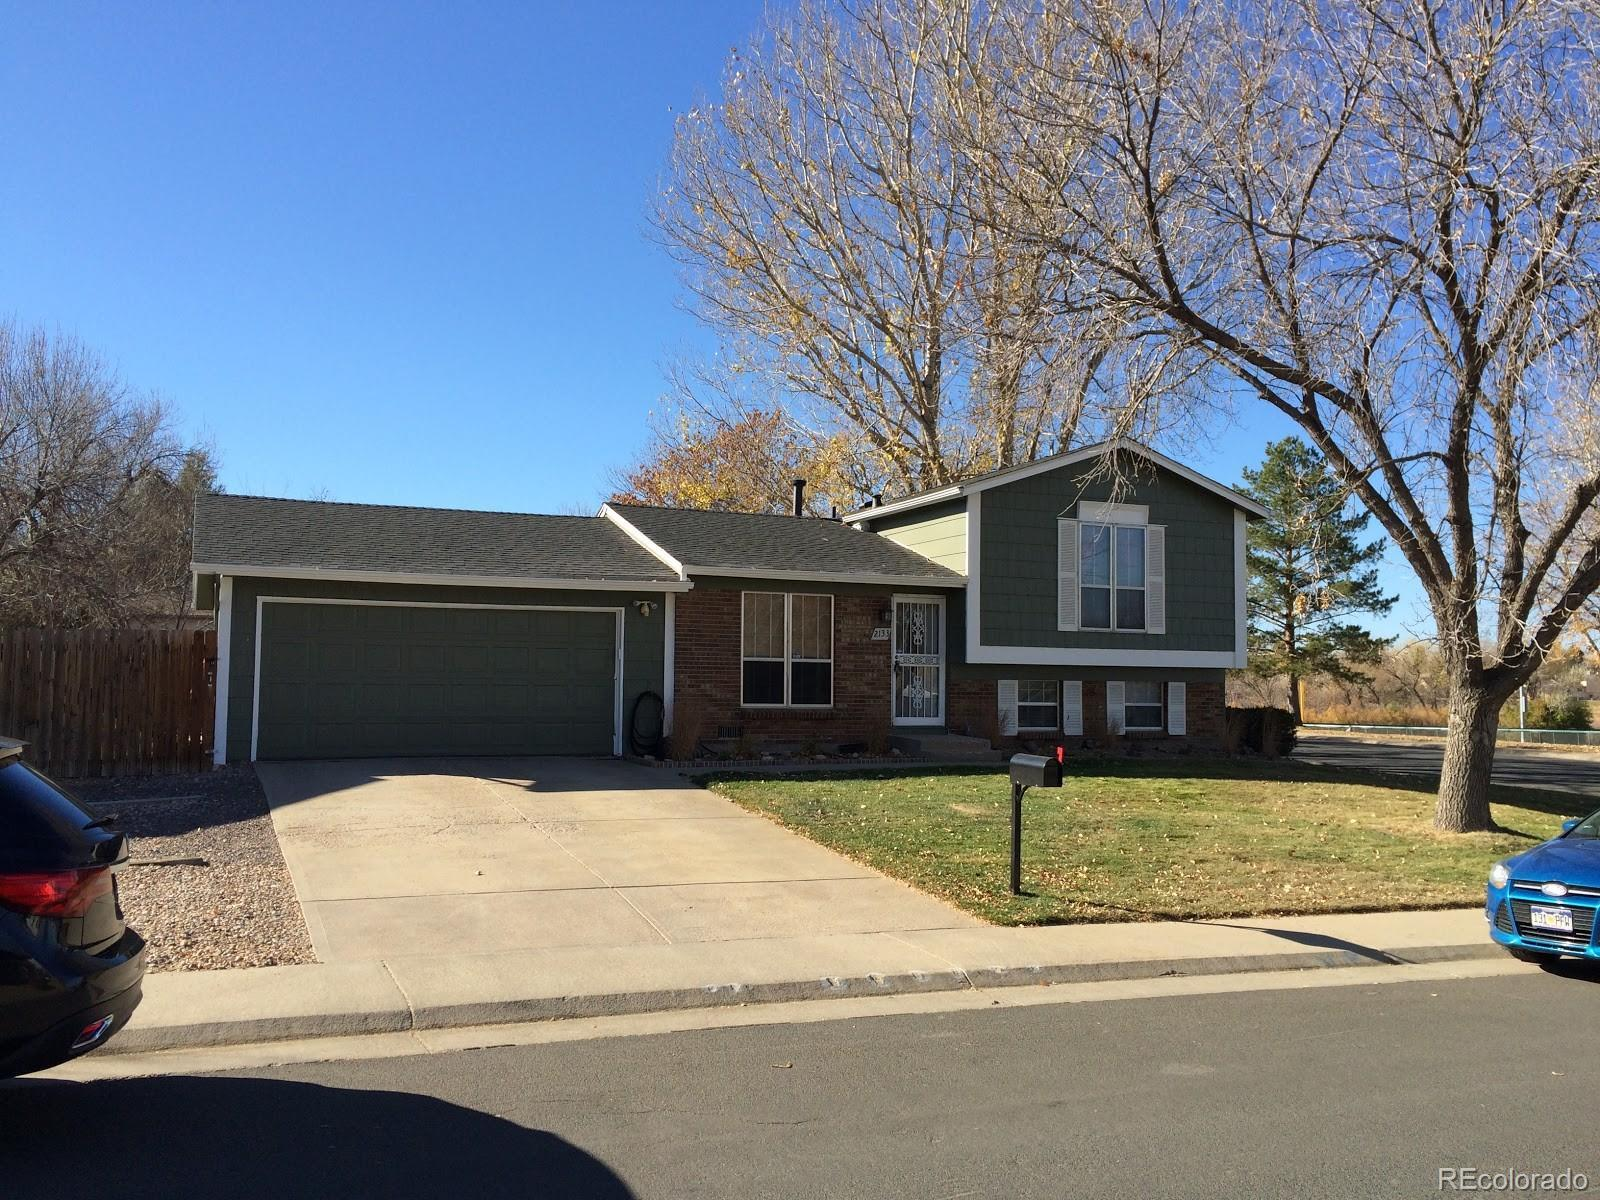 2133 S Lewiston Street, Aurora, CO 80013 - #: 5225990